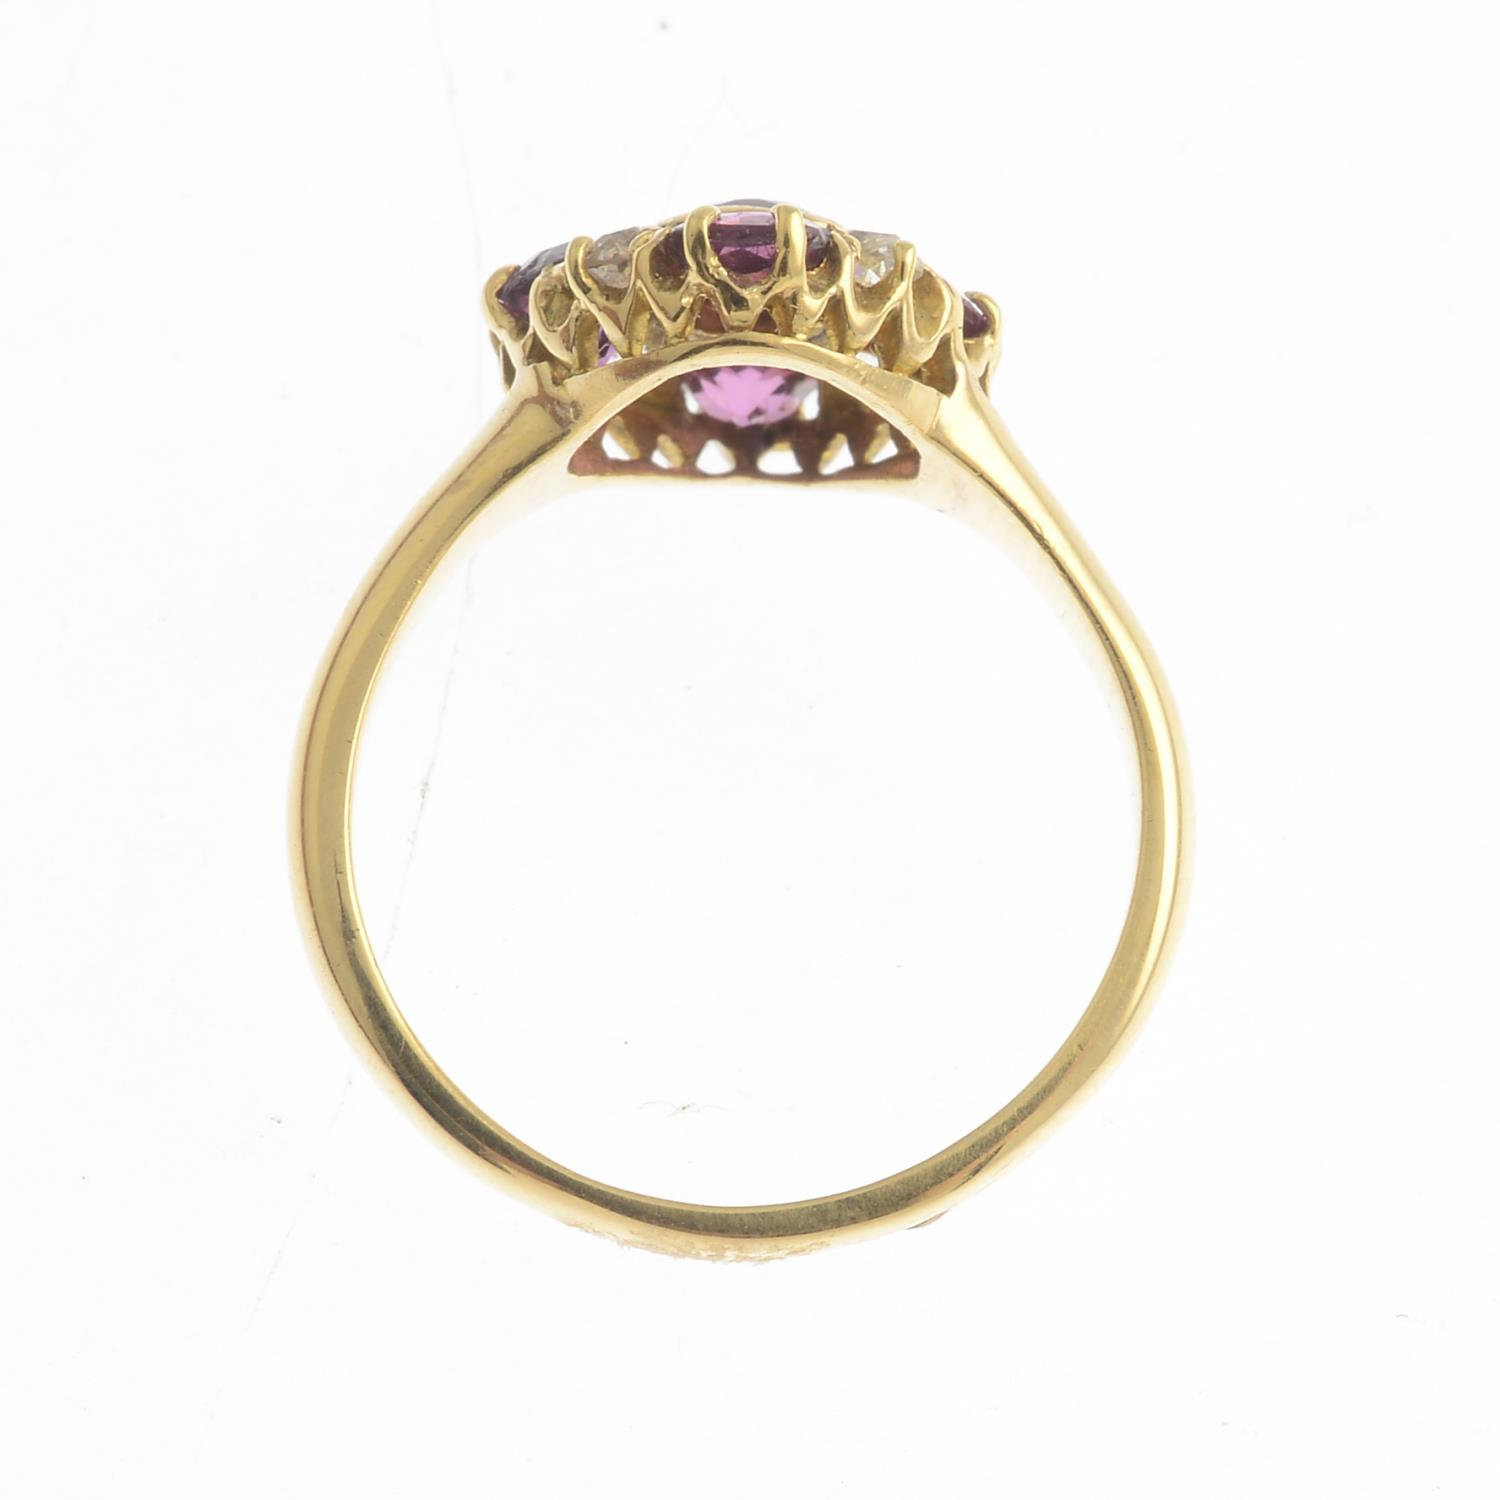 An early 20th century 18ct gold garnet, - Image 3 of 3